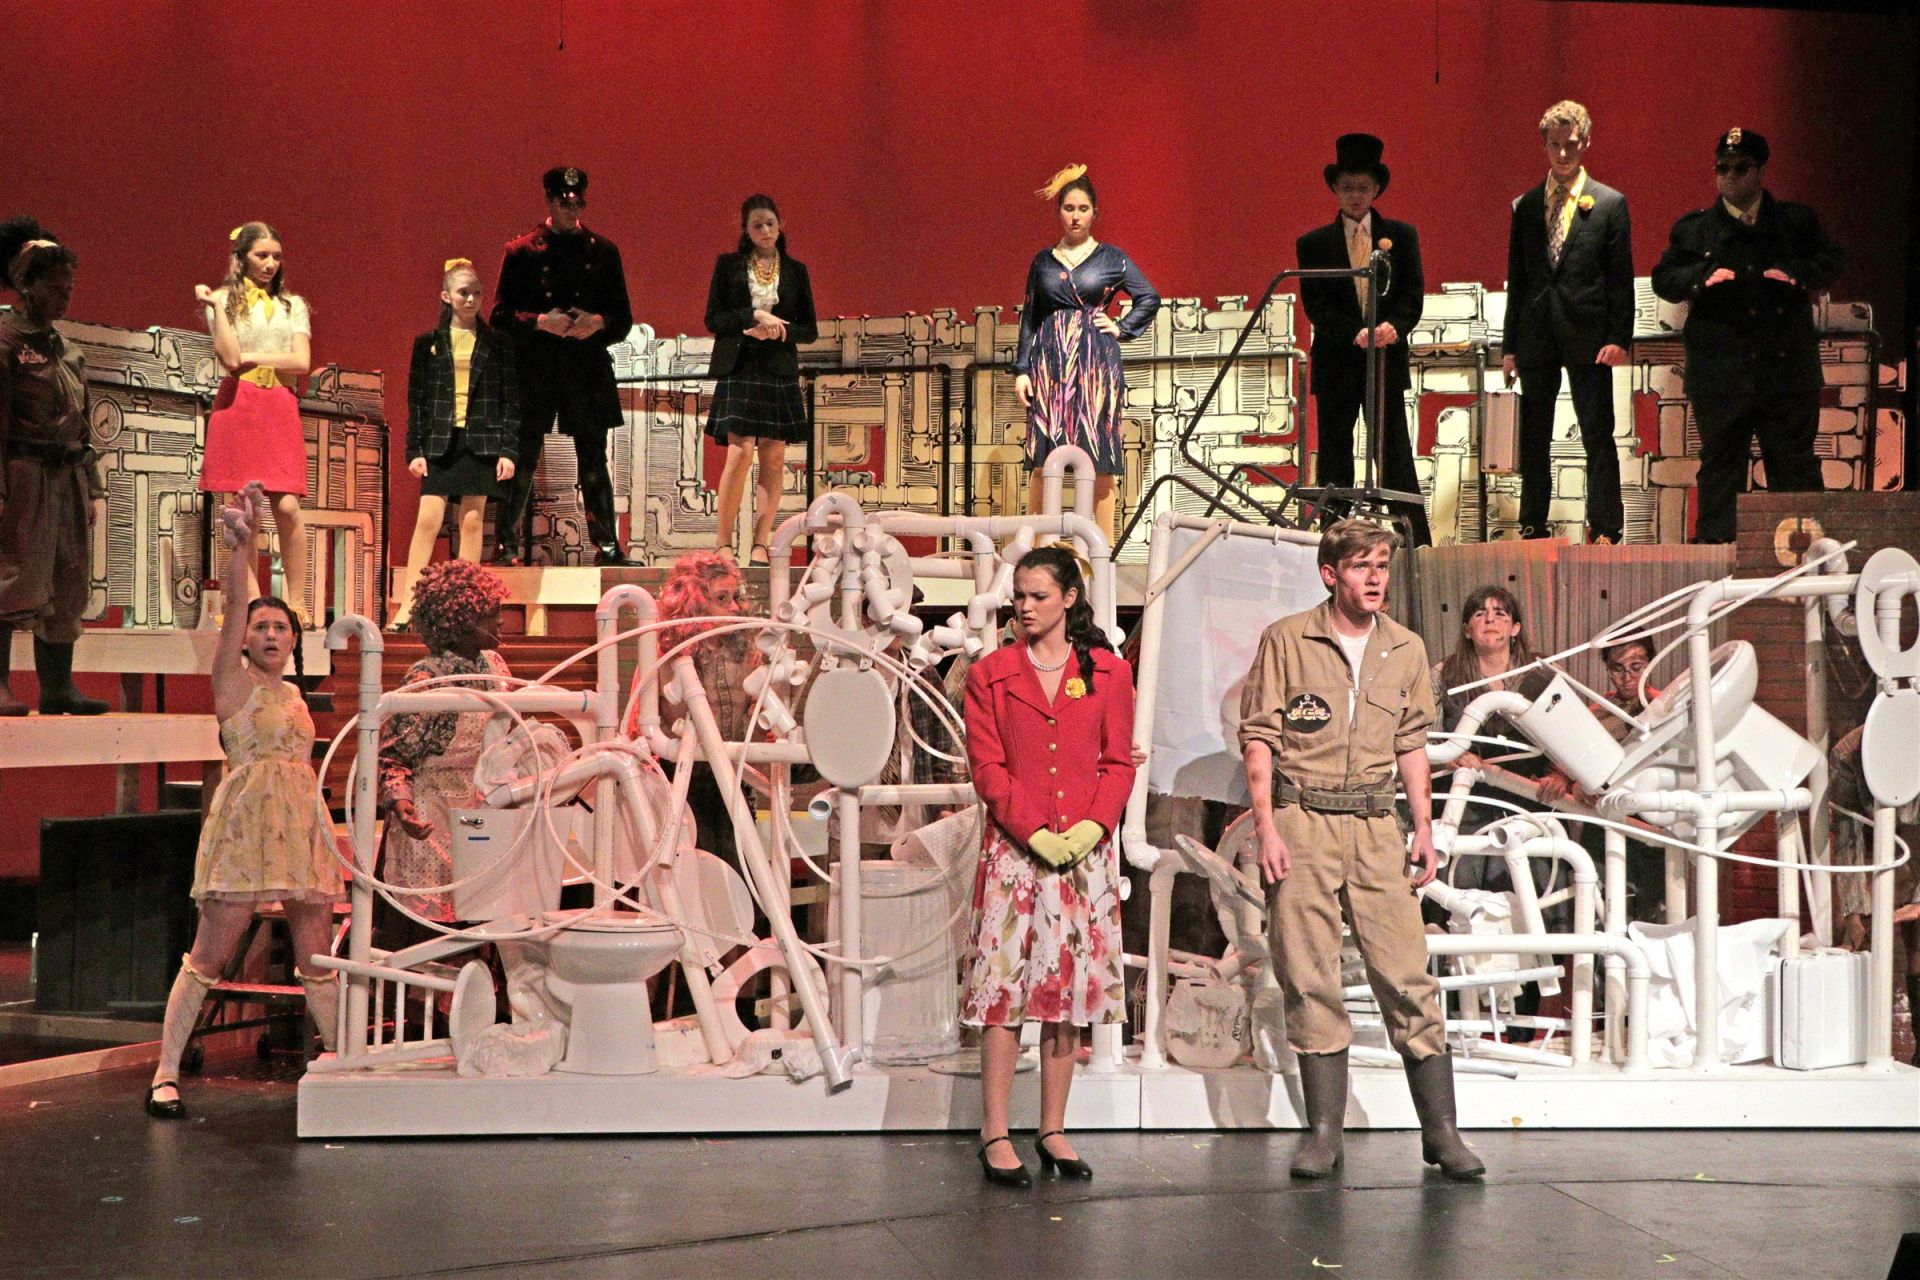 The multi-tier set and large moveable set pieces for Urinetown built by St. Luke's Tech Crew helped accommodate for the many actors in the production